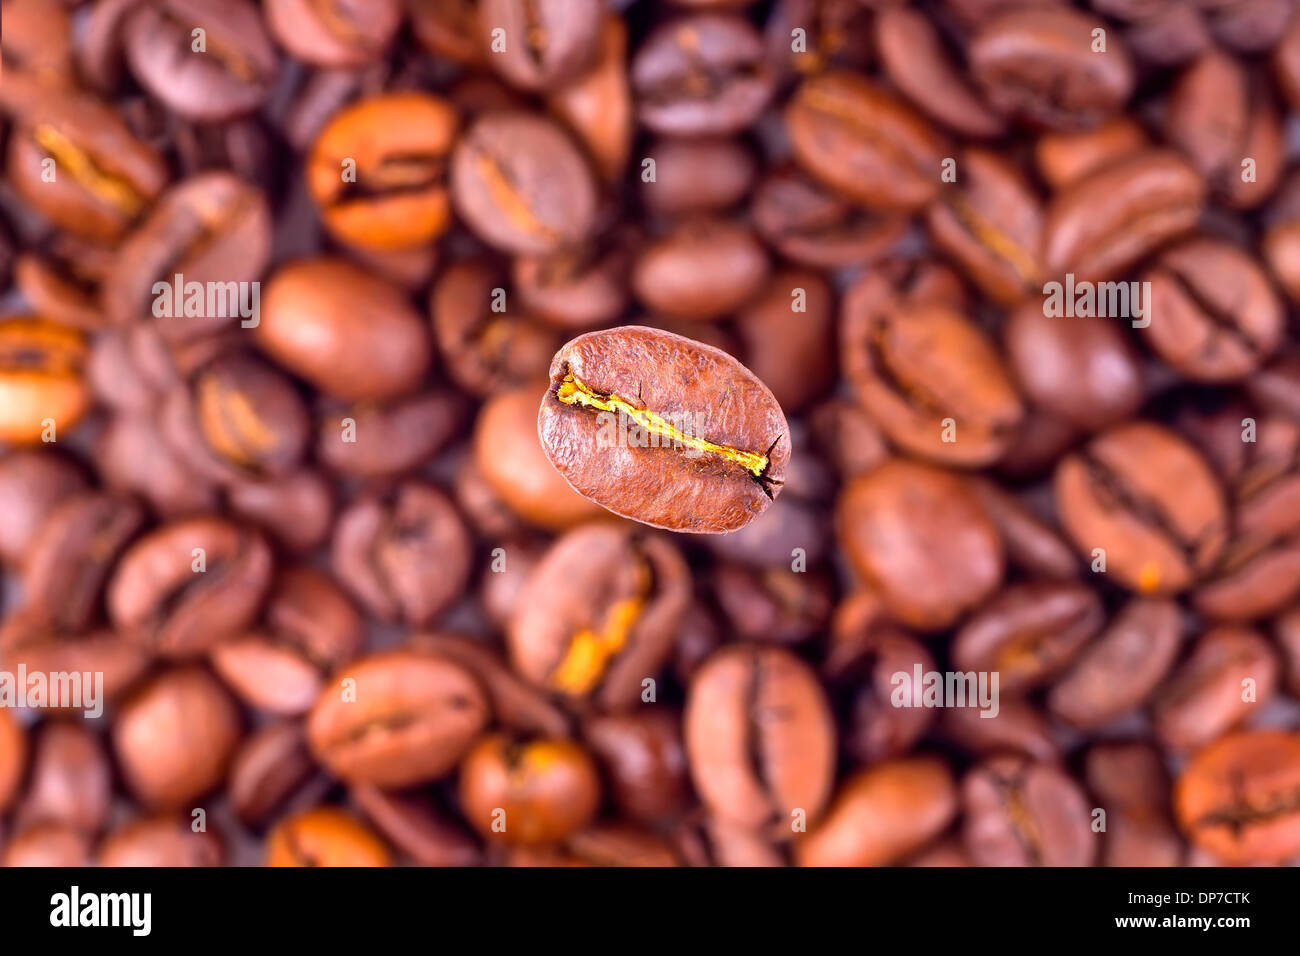 Coffee bean on blurred beans background - Stock Image